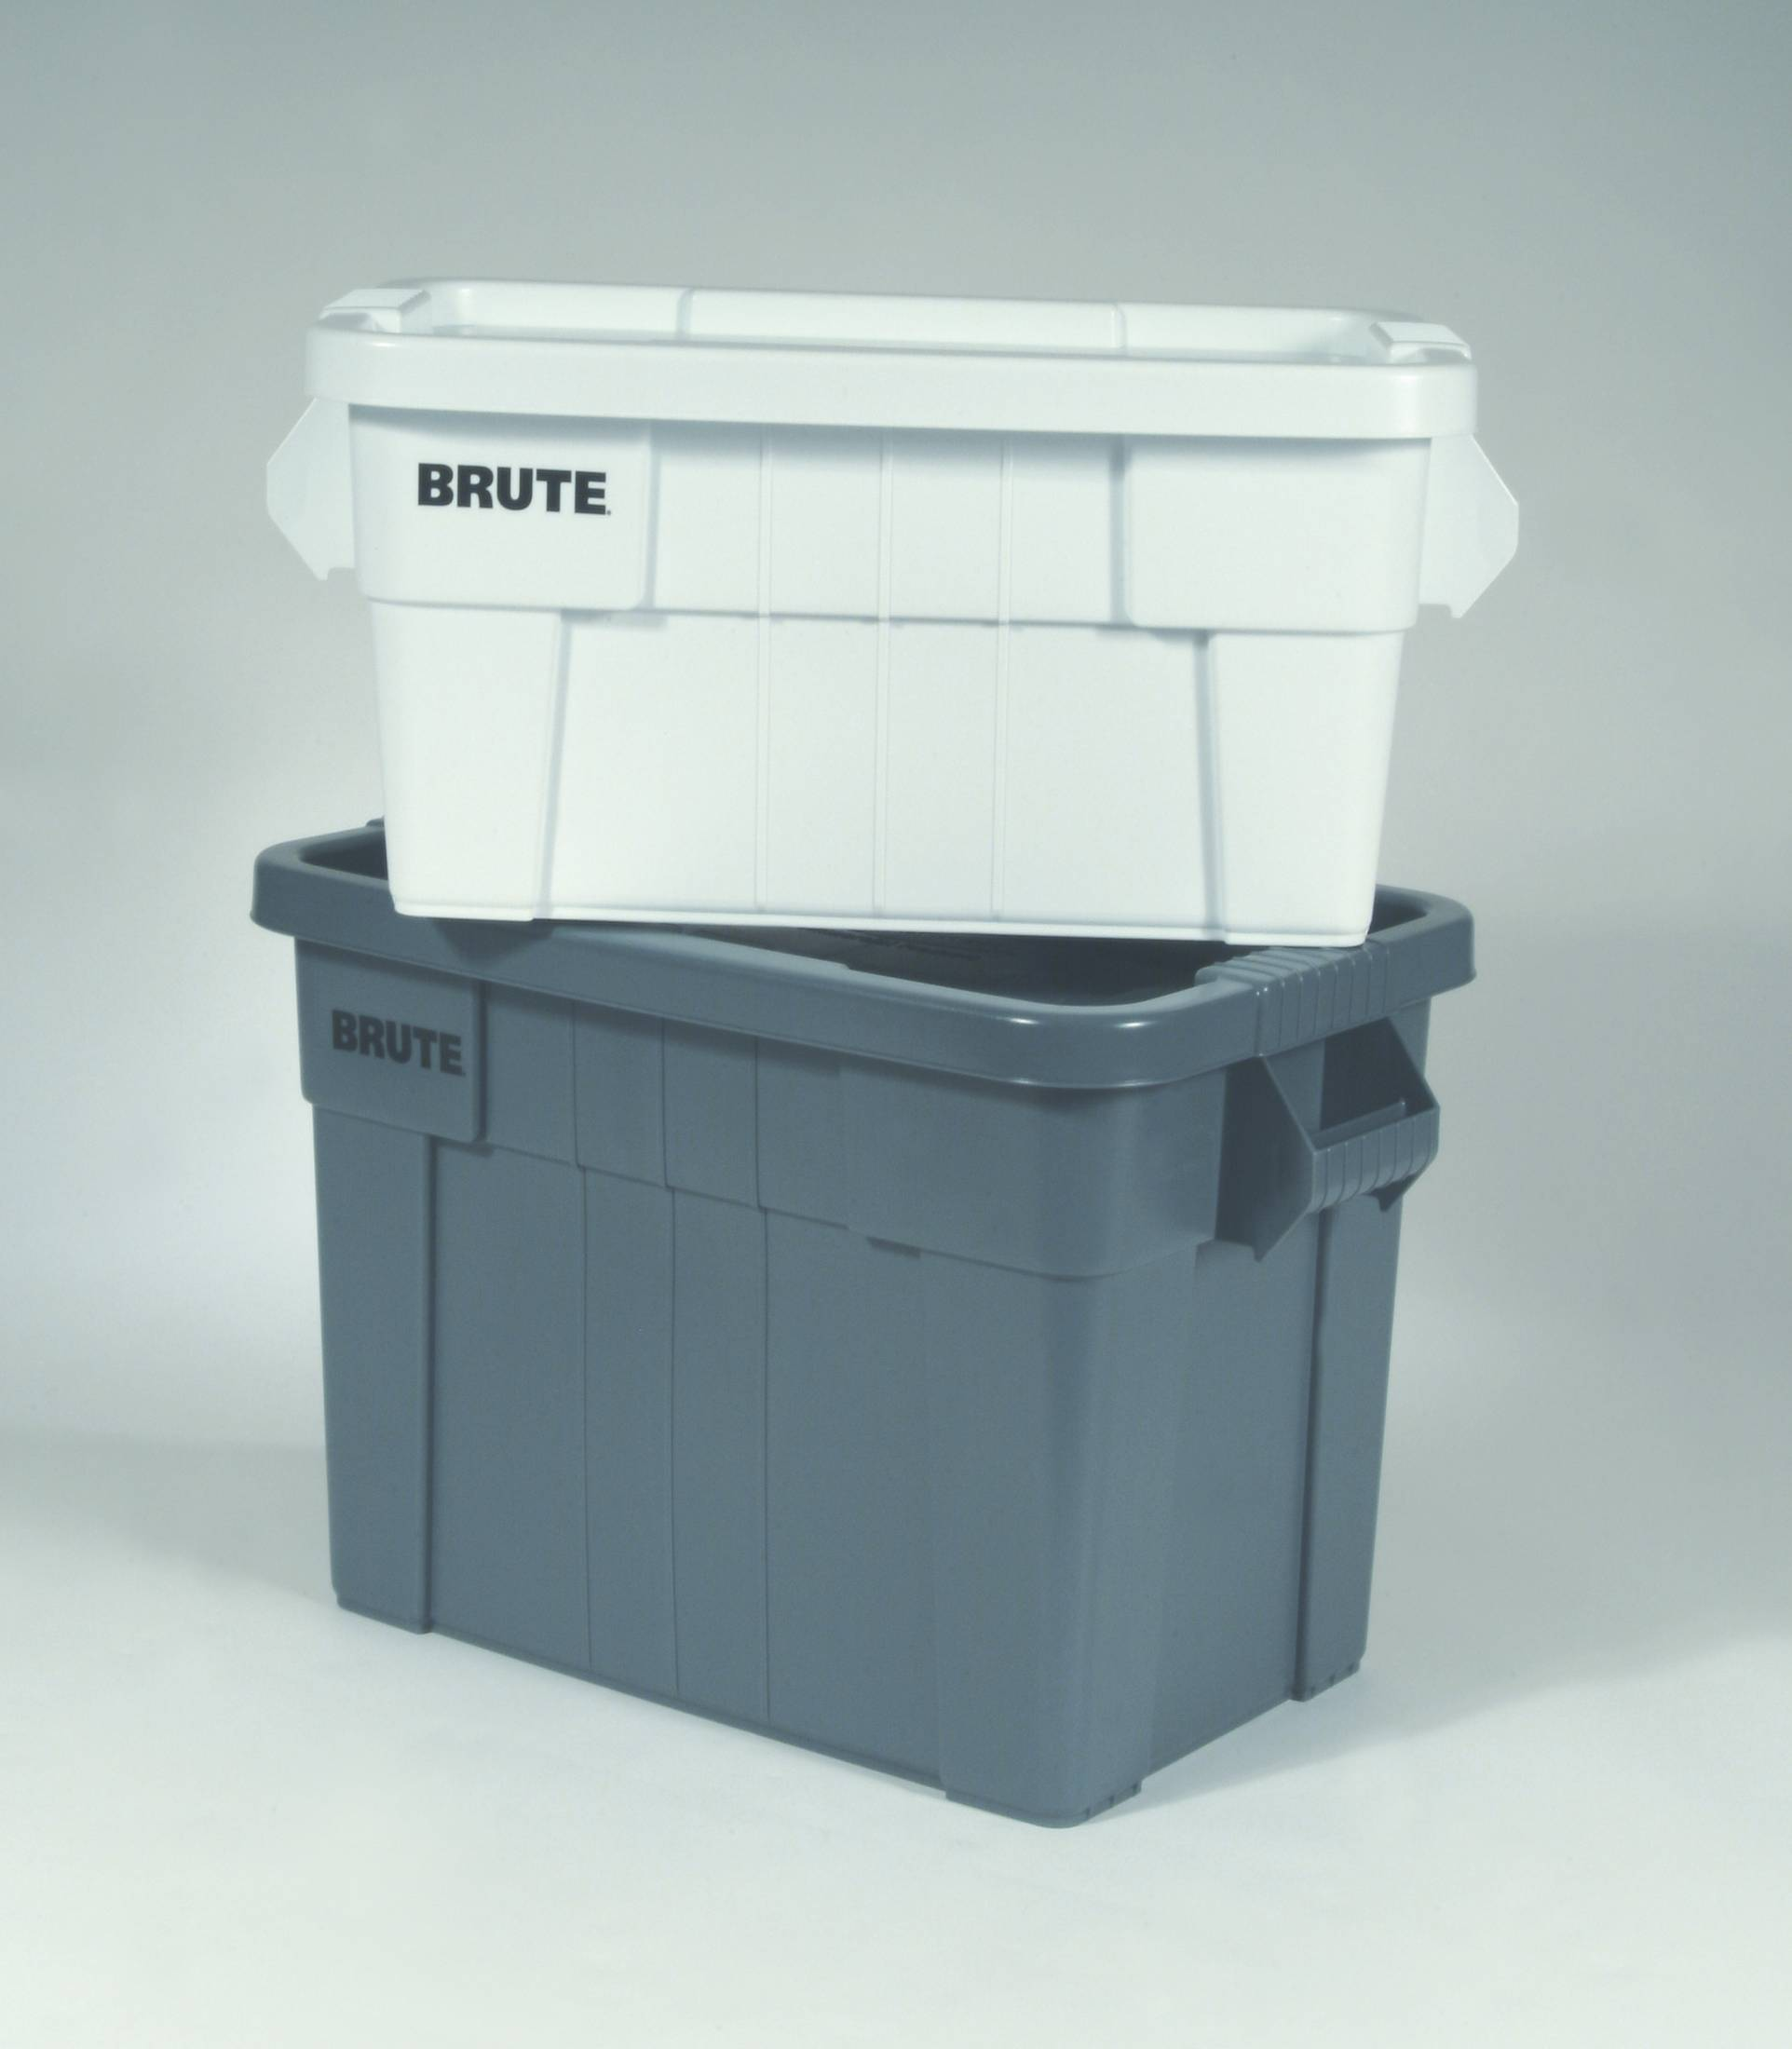 & 9S31 Brute Rubbermaid Storage Totes with Lids